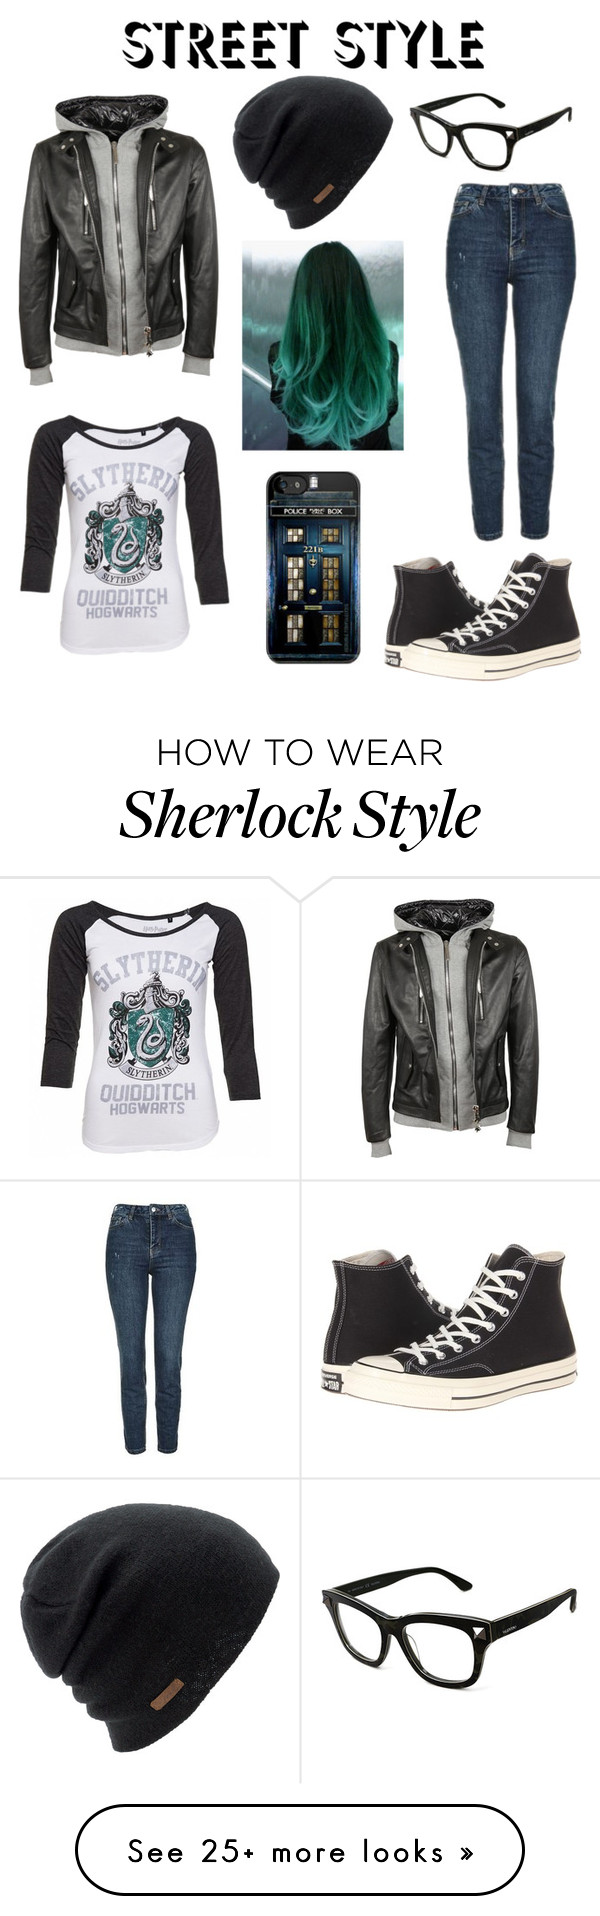 """Street Style"" by open-minds on Polyvore featuring Topshop, Coal, Converse, Valentino and Philipp Plein"